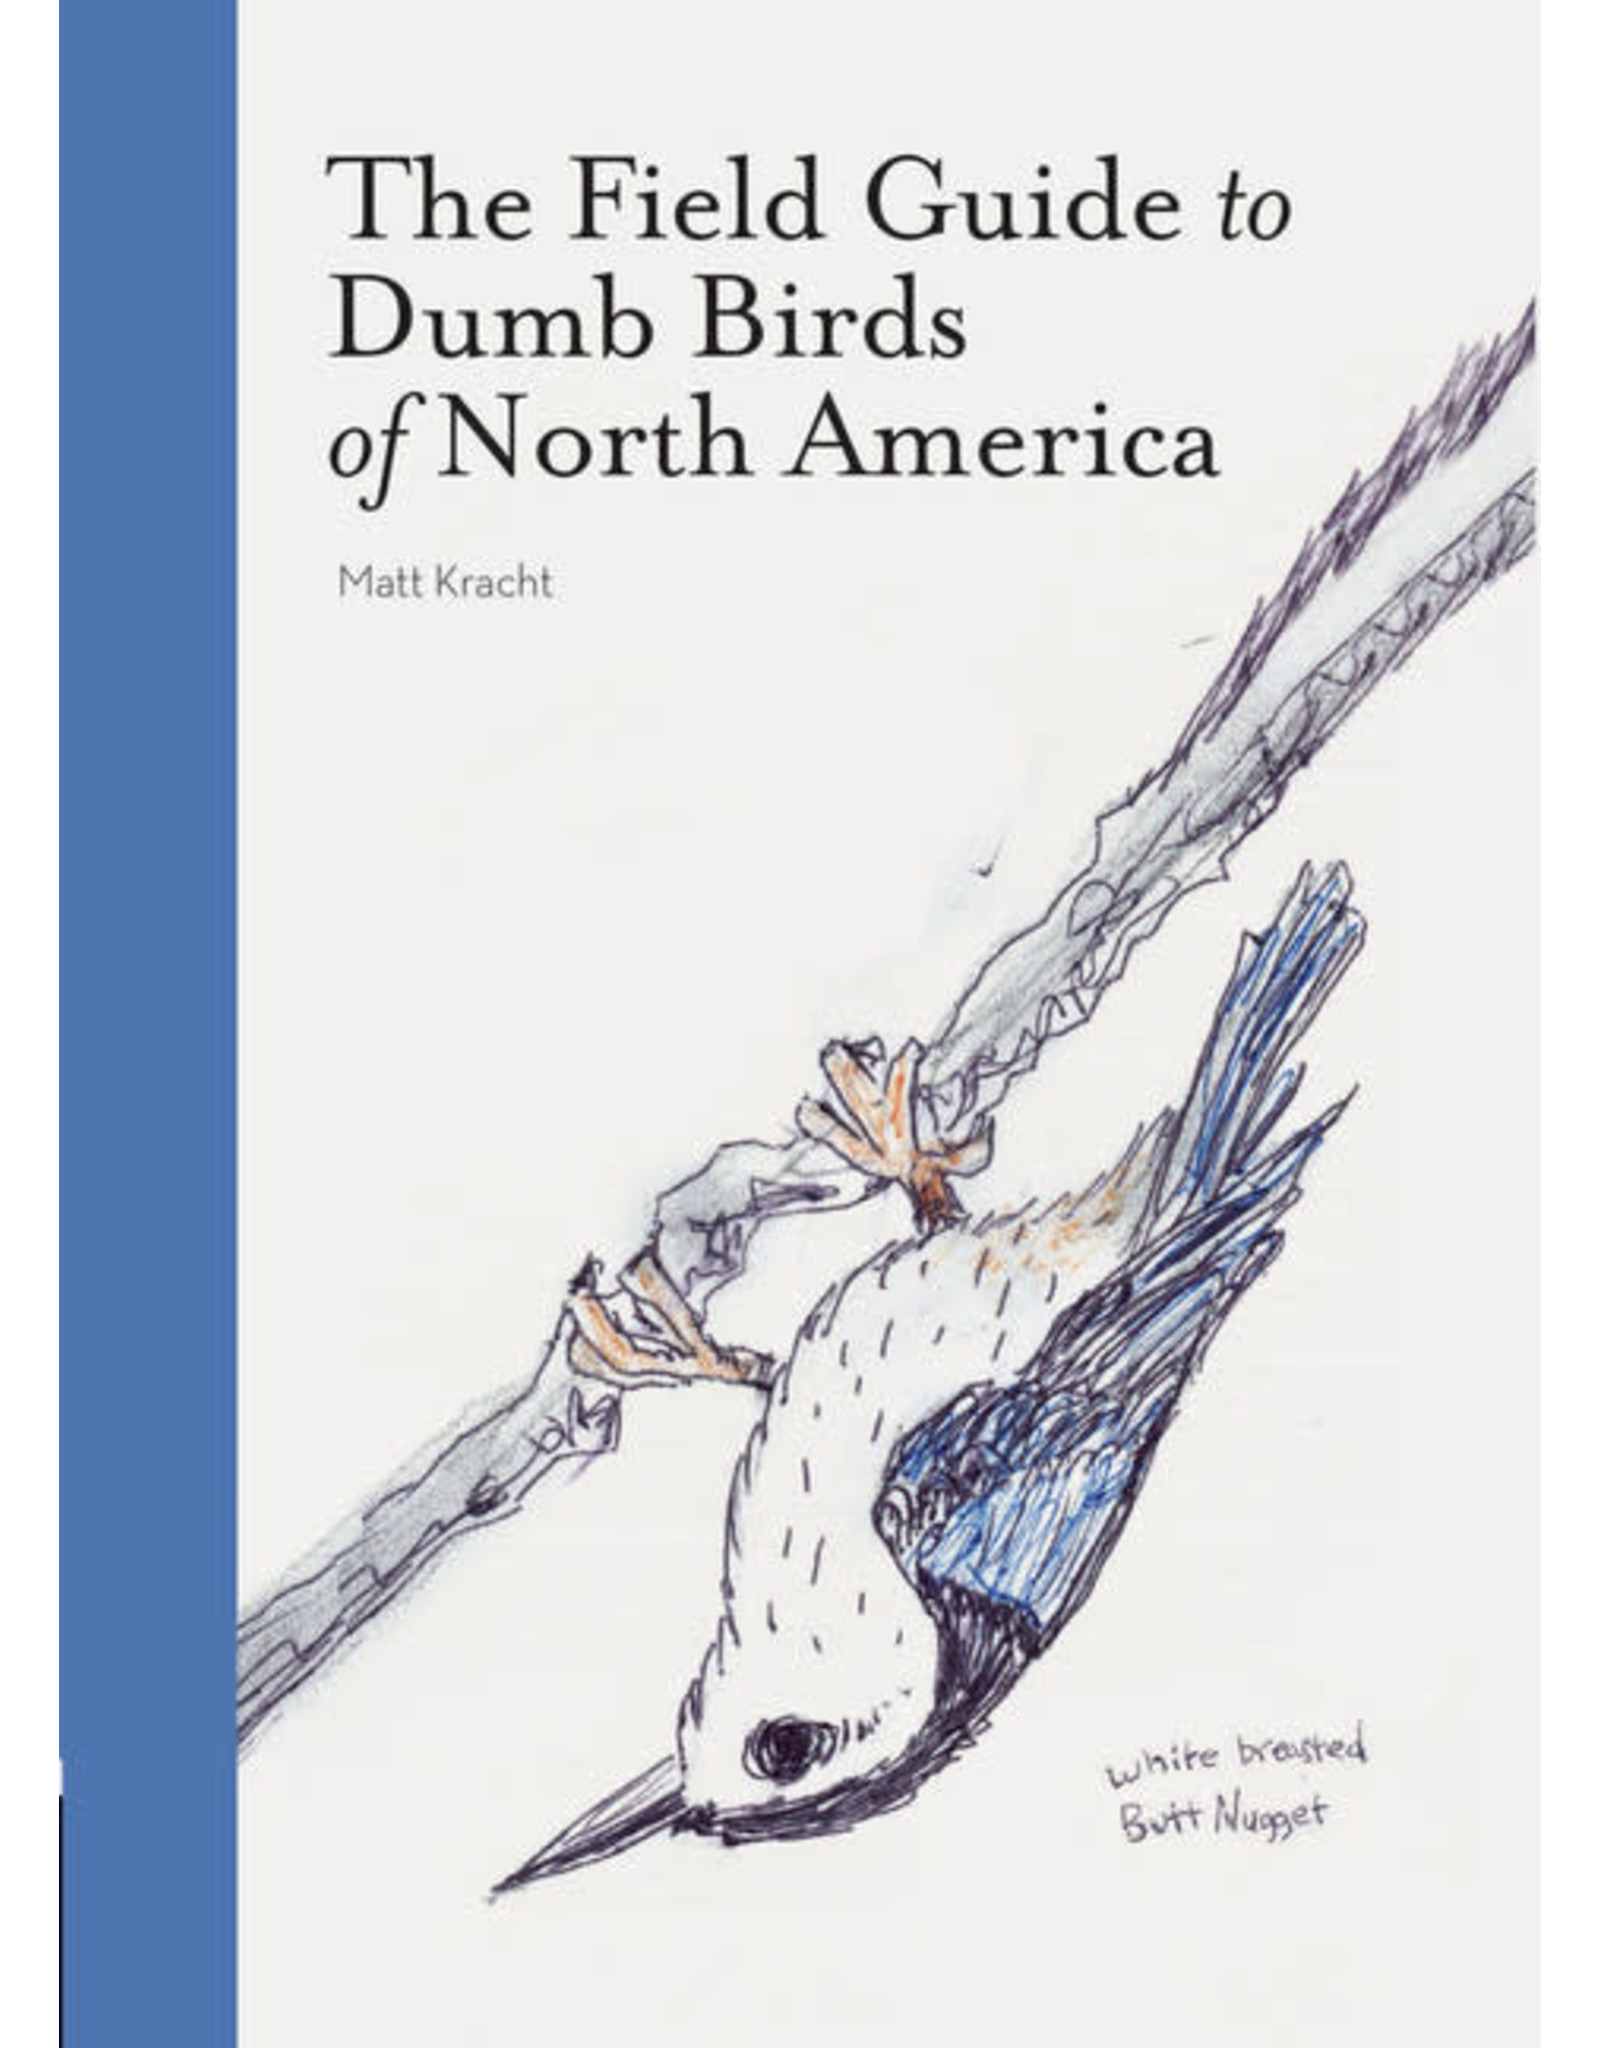 RST - The Field Guide to Dumb Birds of North America